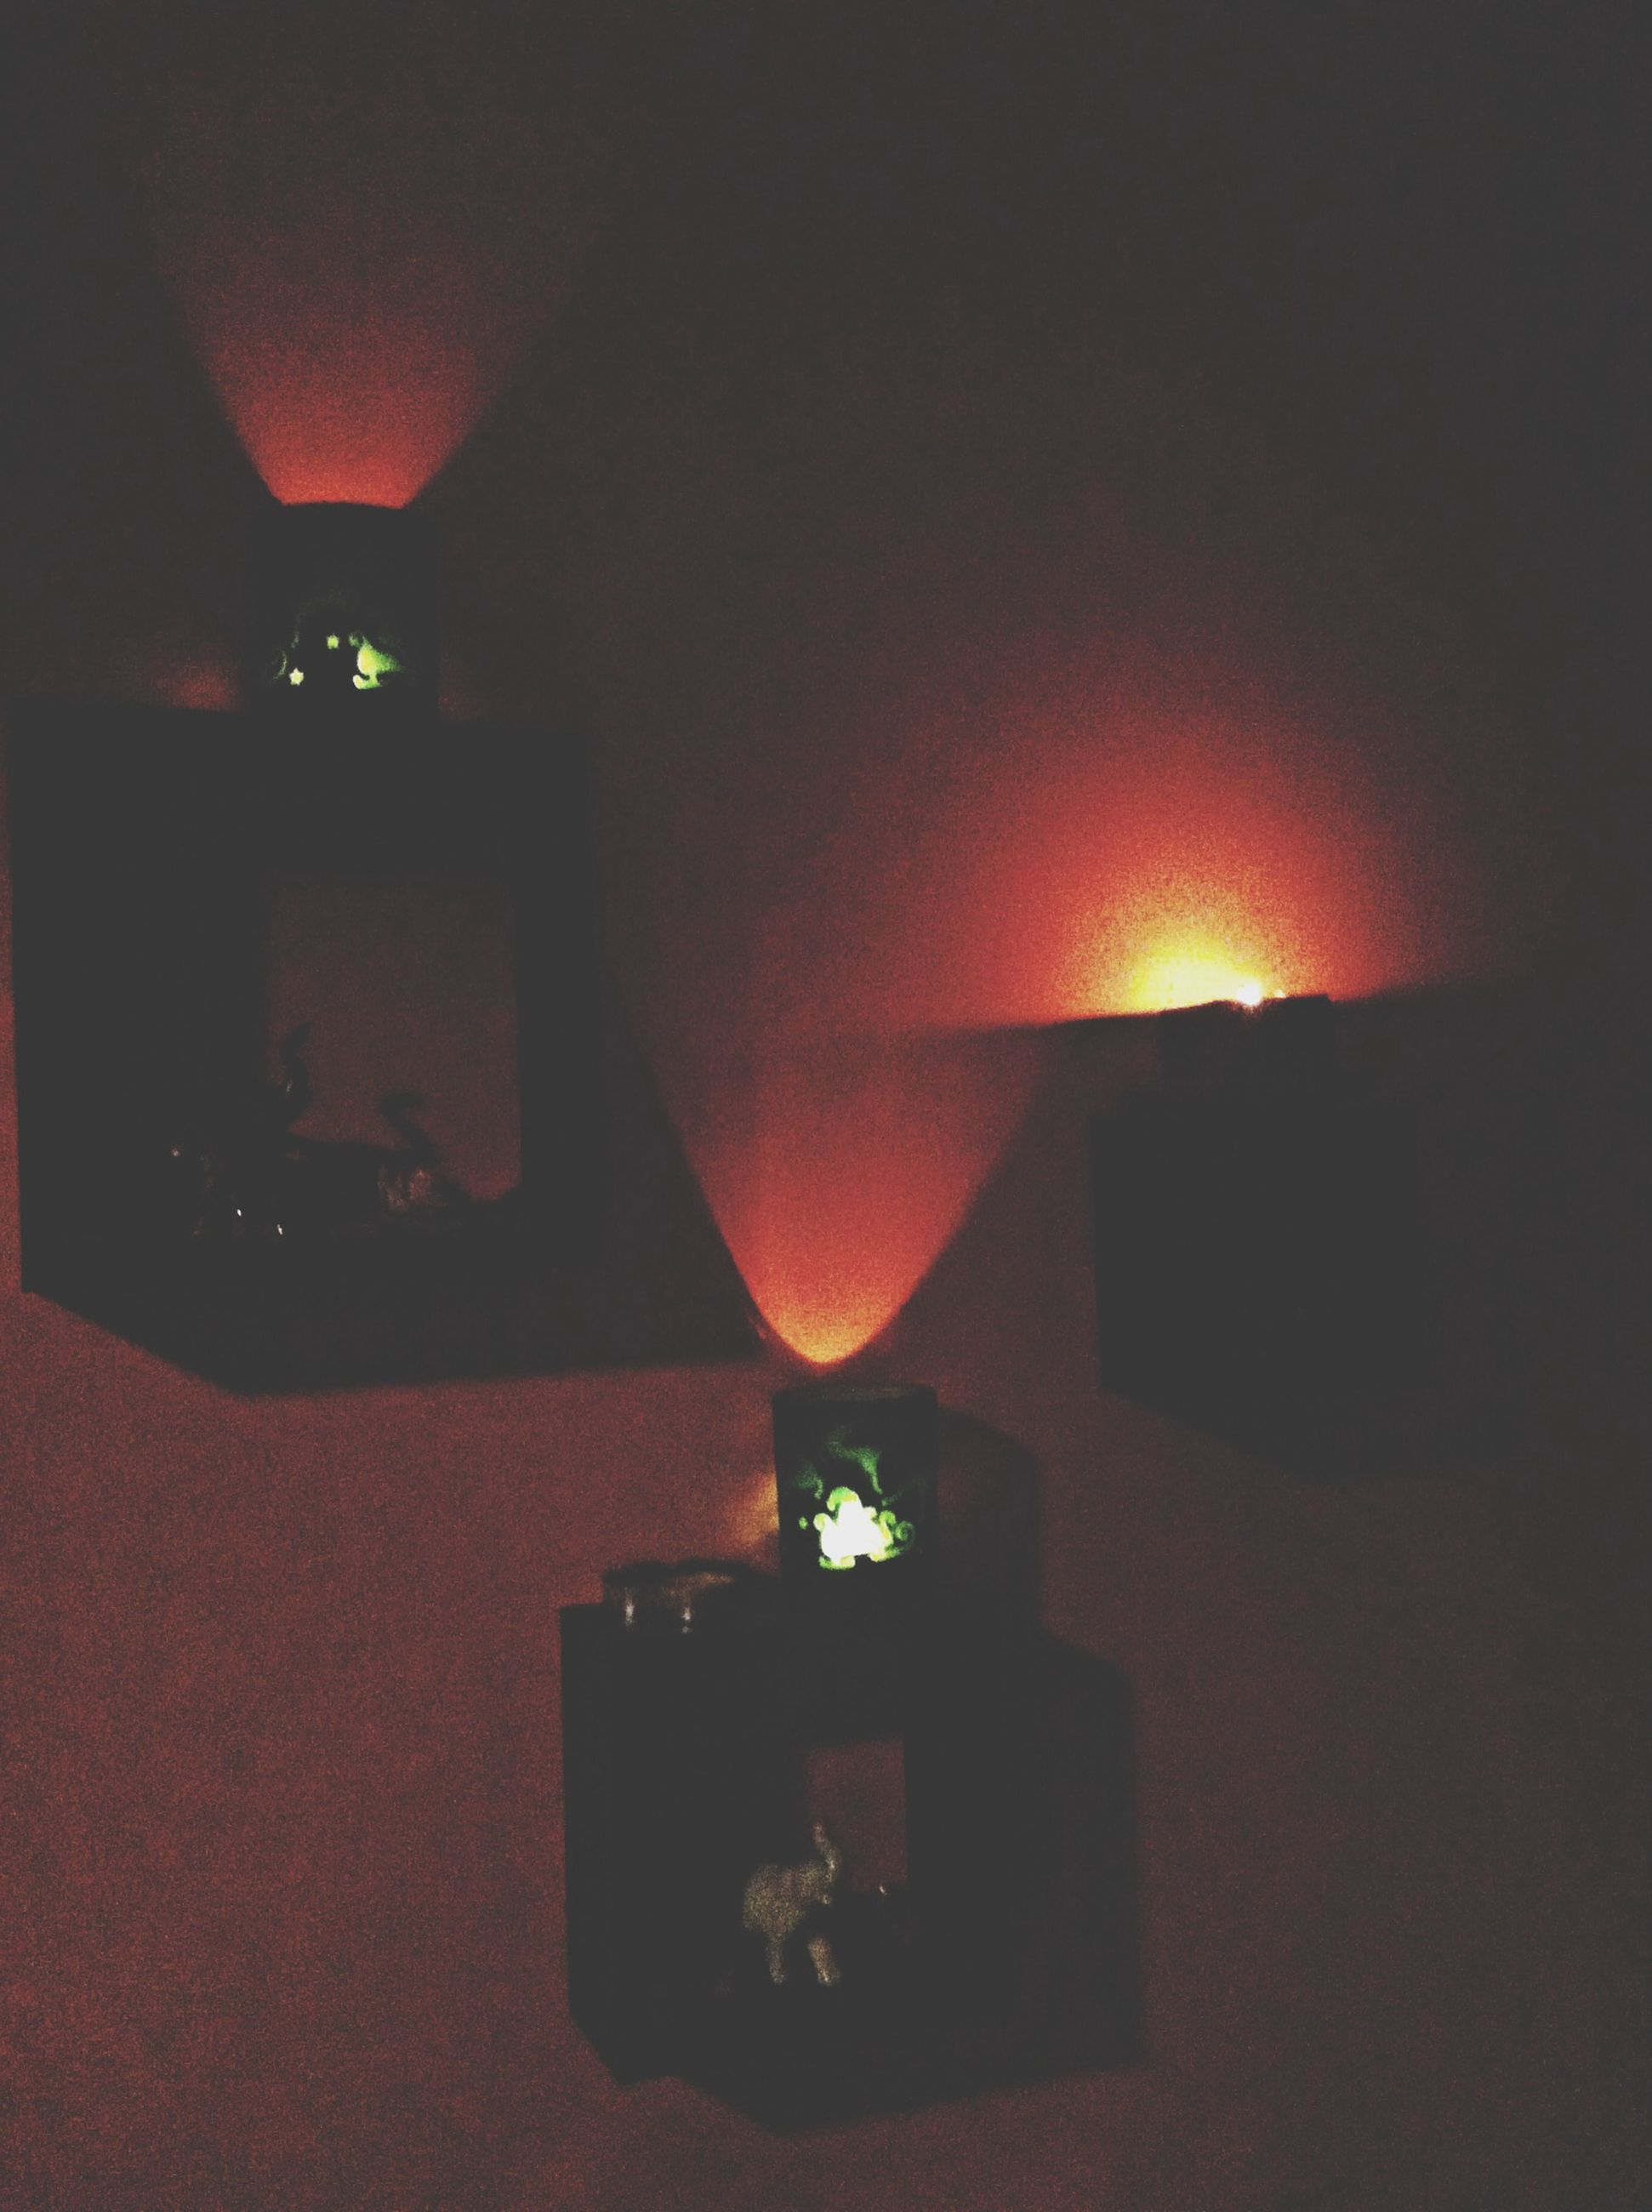 illuminated, indoors, lighting equipment, night, wall - building feature, dark, home interior, built structure, architecture, house, light - natural phenomenon, electricity, electric lamp, no people, lantern, glowing, orange color, close-up, wall, copy space